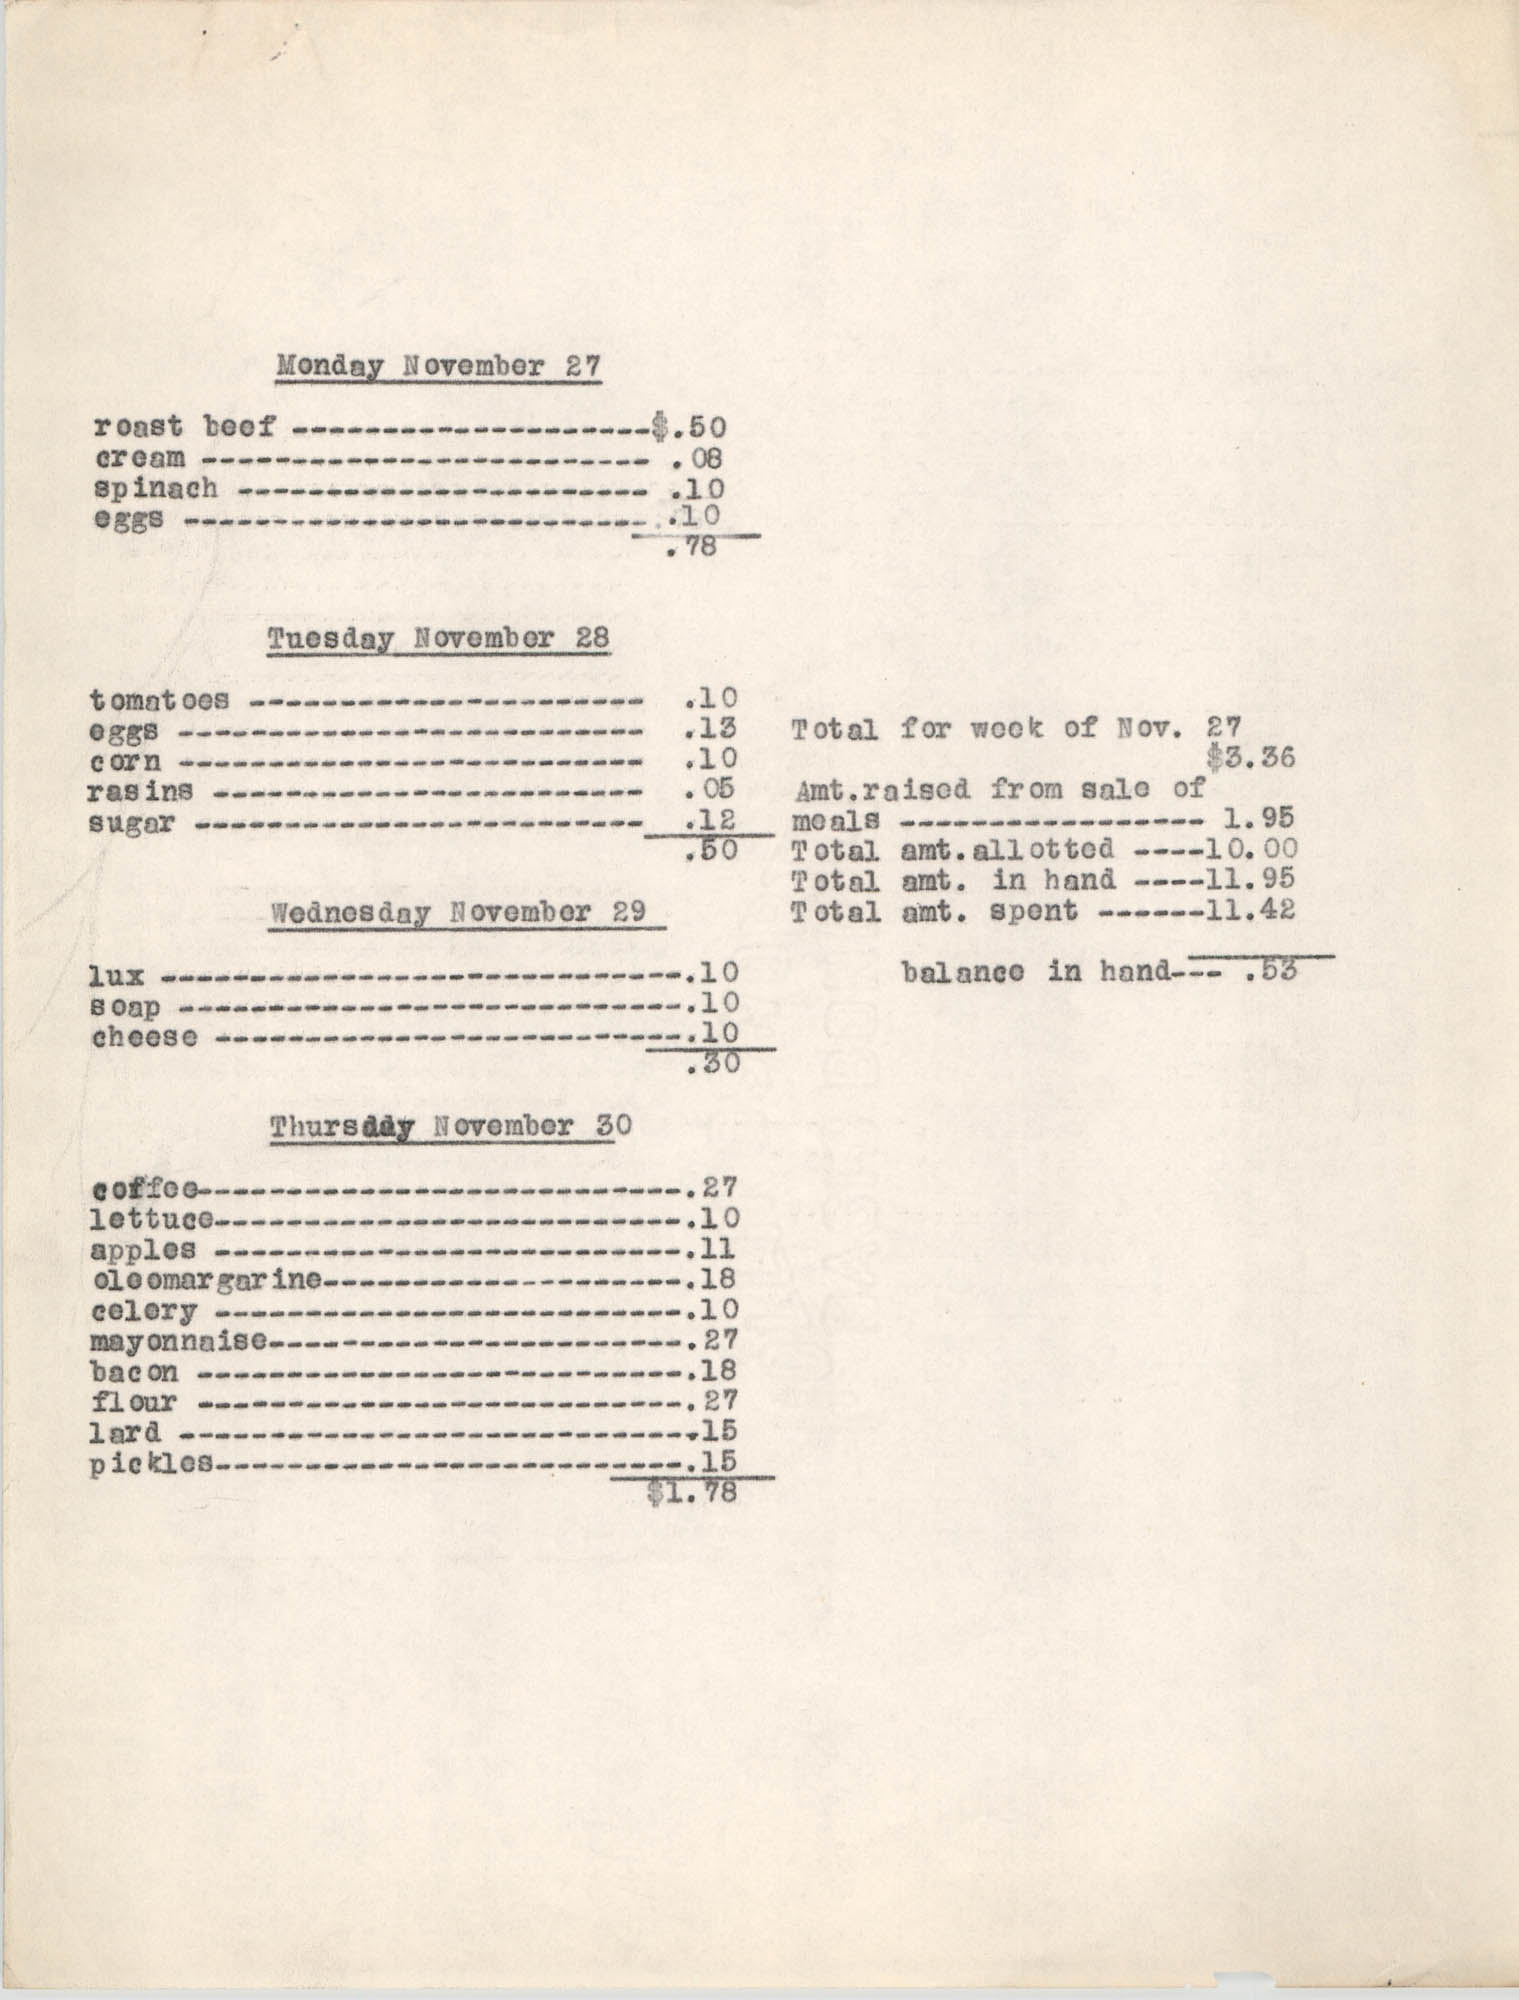 Monthly Report for the Coming Street Y.W.C.A., Expenses for November 1939, Page 4